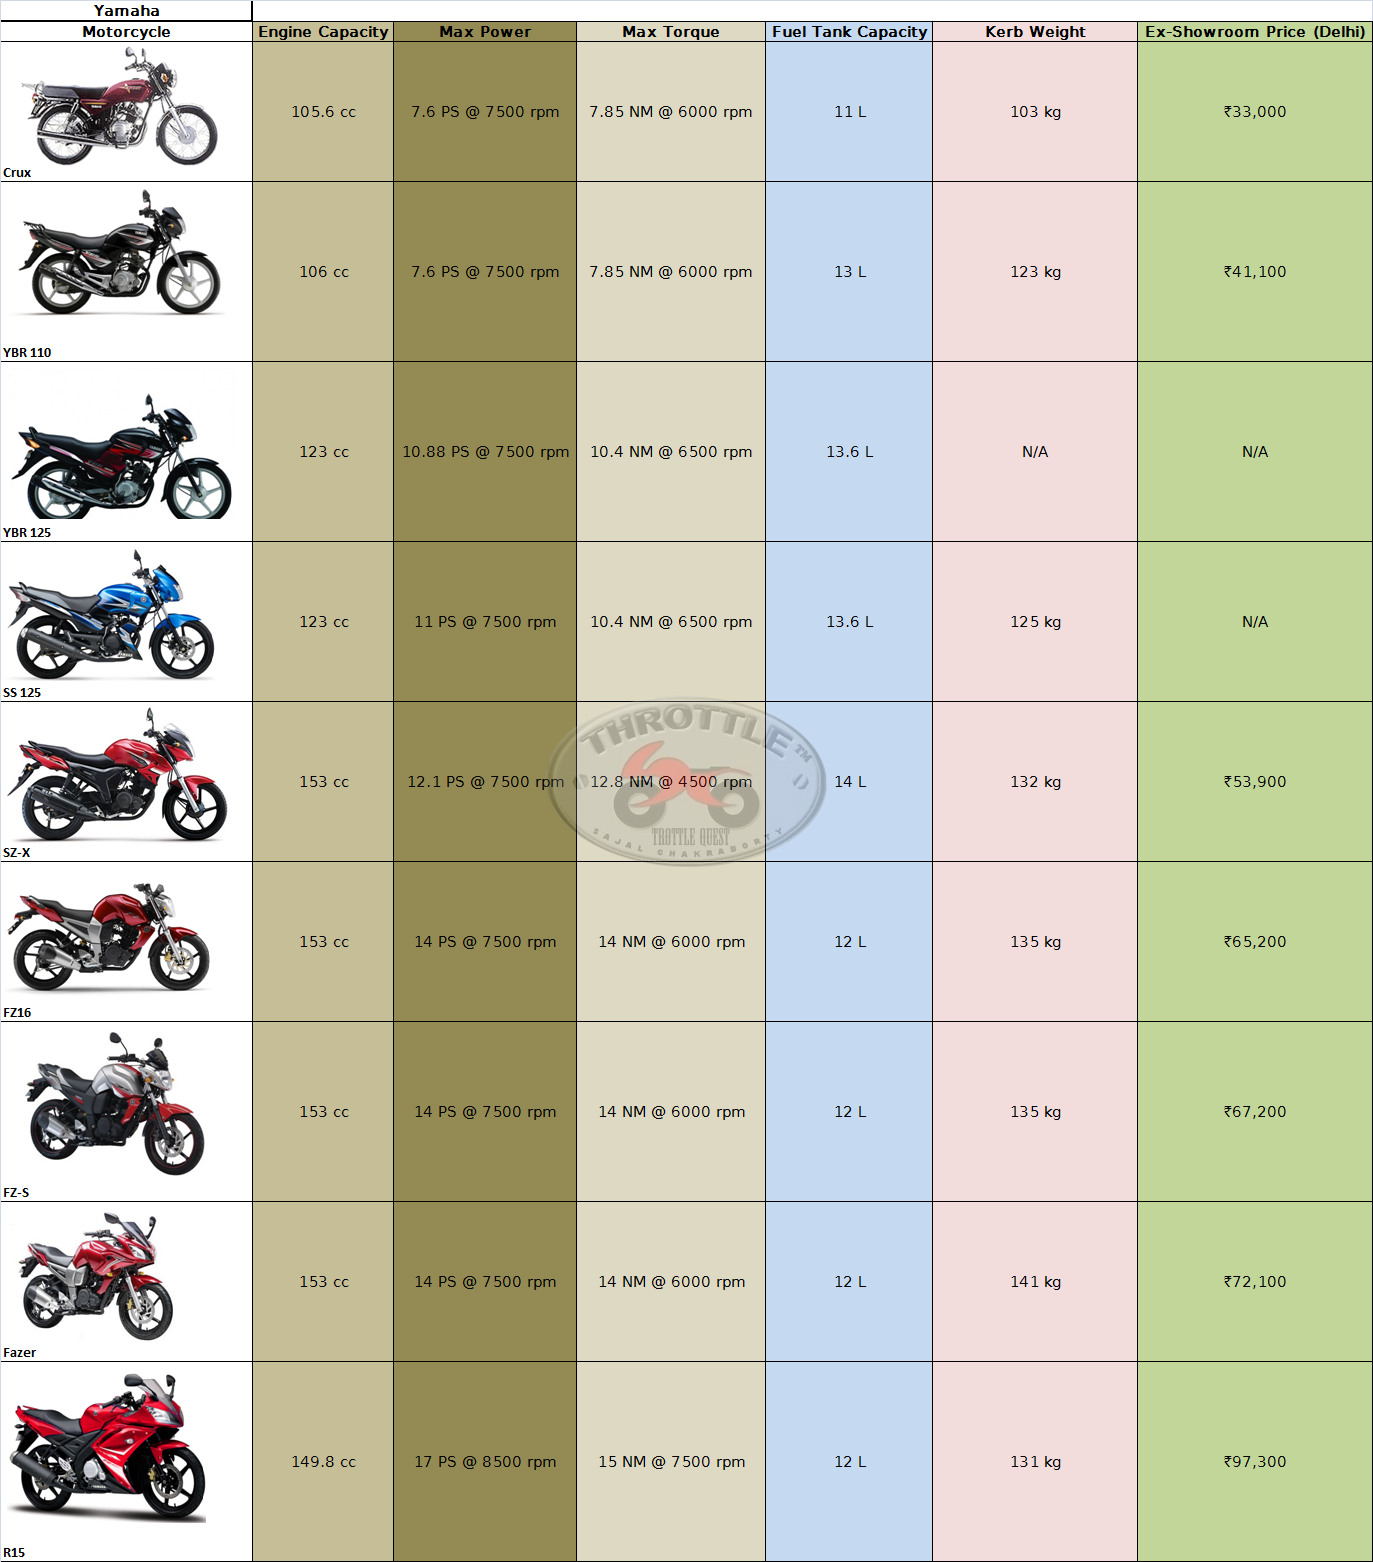 Motorcycle Price List - January 2011